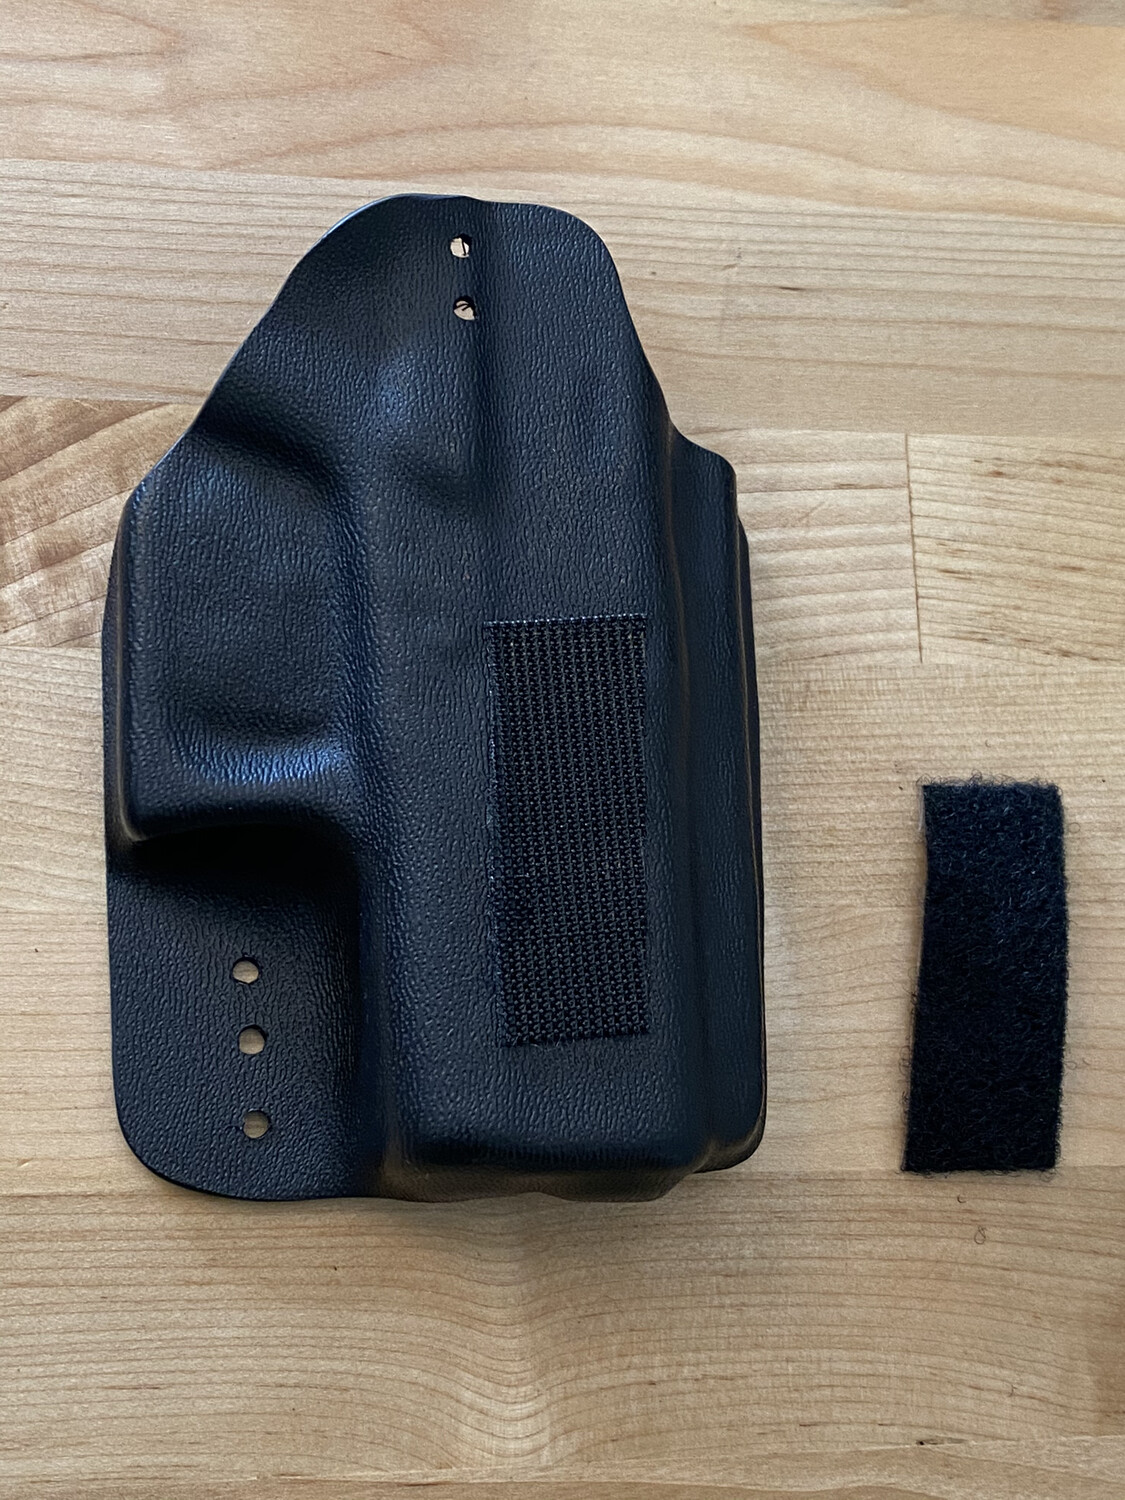 Kydex Shell-Corset/Belly Band